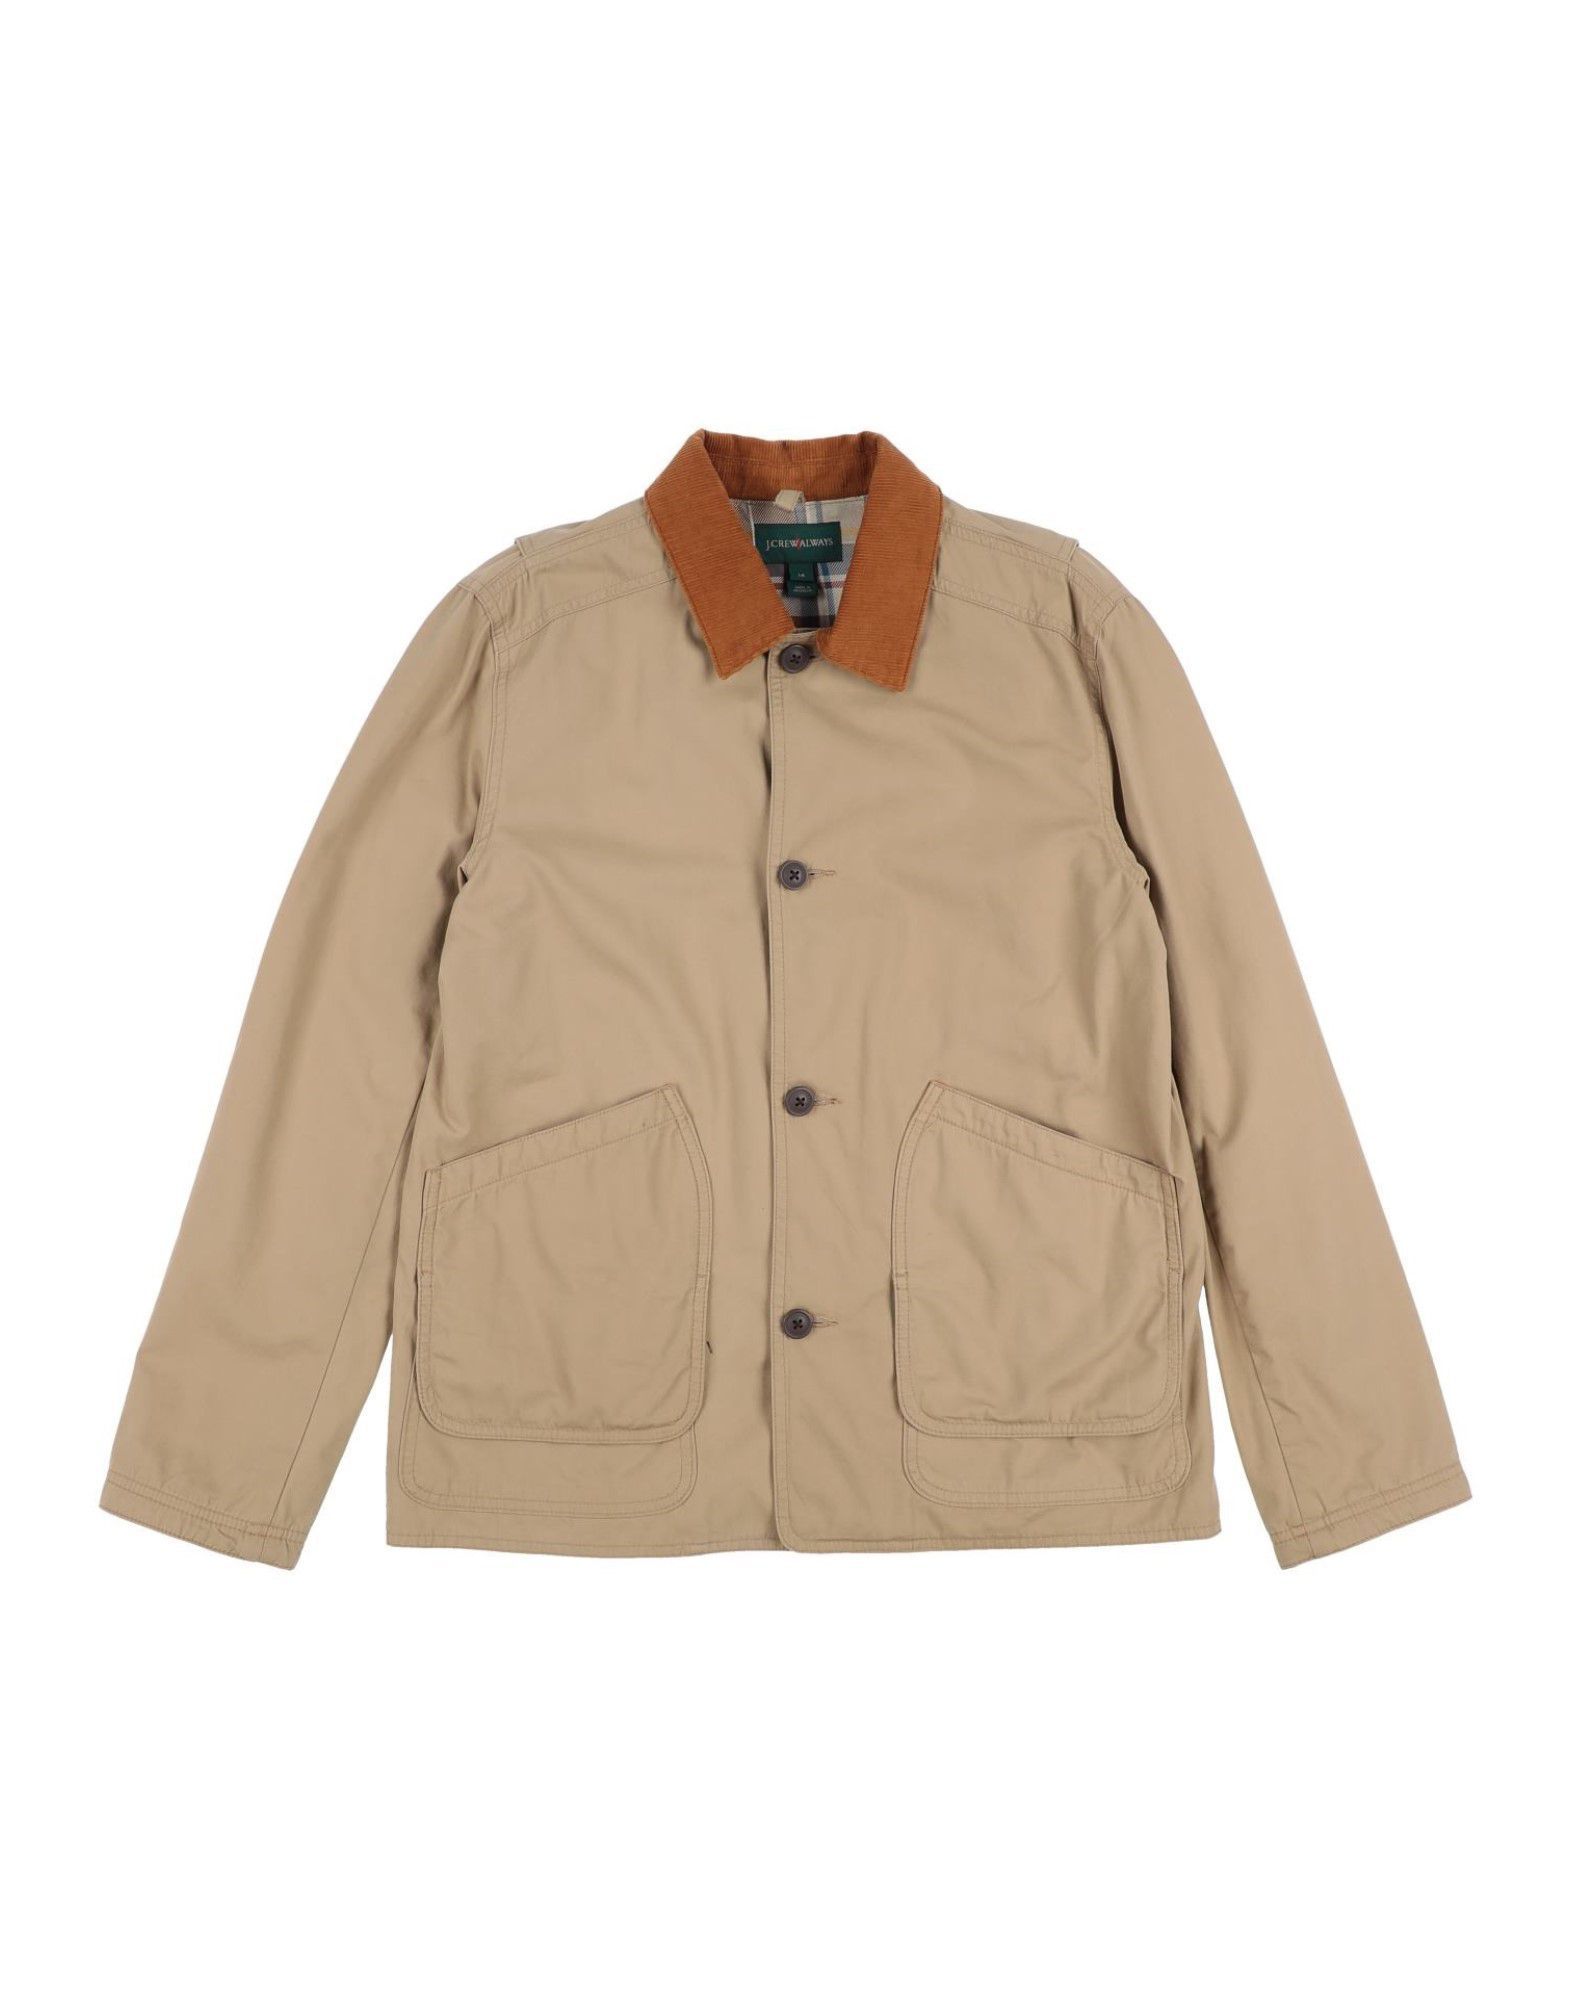 J.CREW Jackets. velvet, plain weave, no appliqués, solid color, button closing, single-breasted, classic neckline, multipockets, long sleeves, fully lined, wash at 30degree c, do not dry clean, iron at 150degree c max, do not bleach, tumble dryable. 100% Cotton